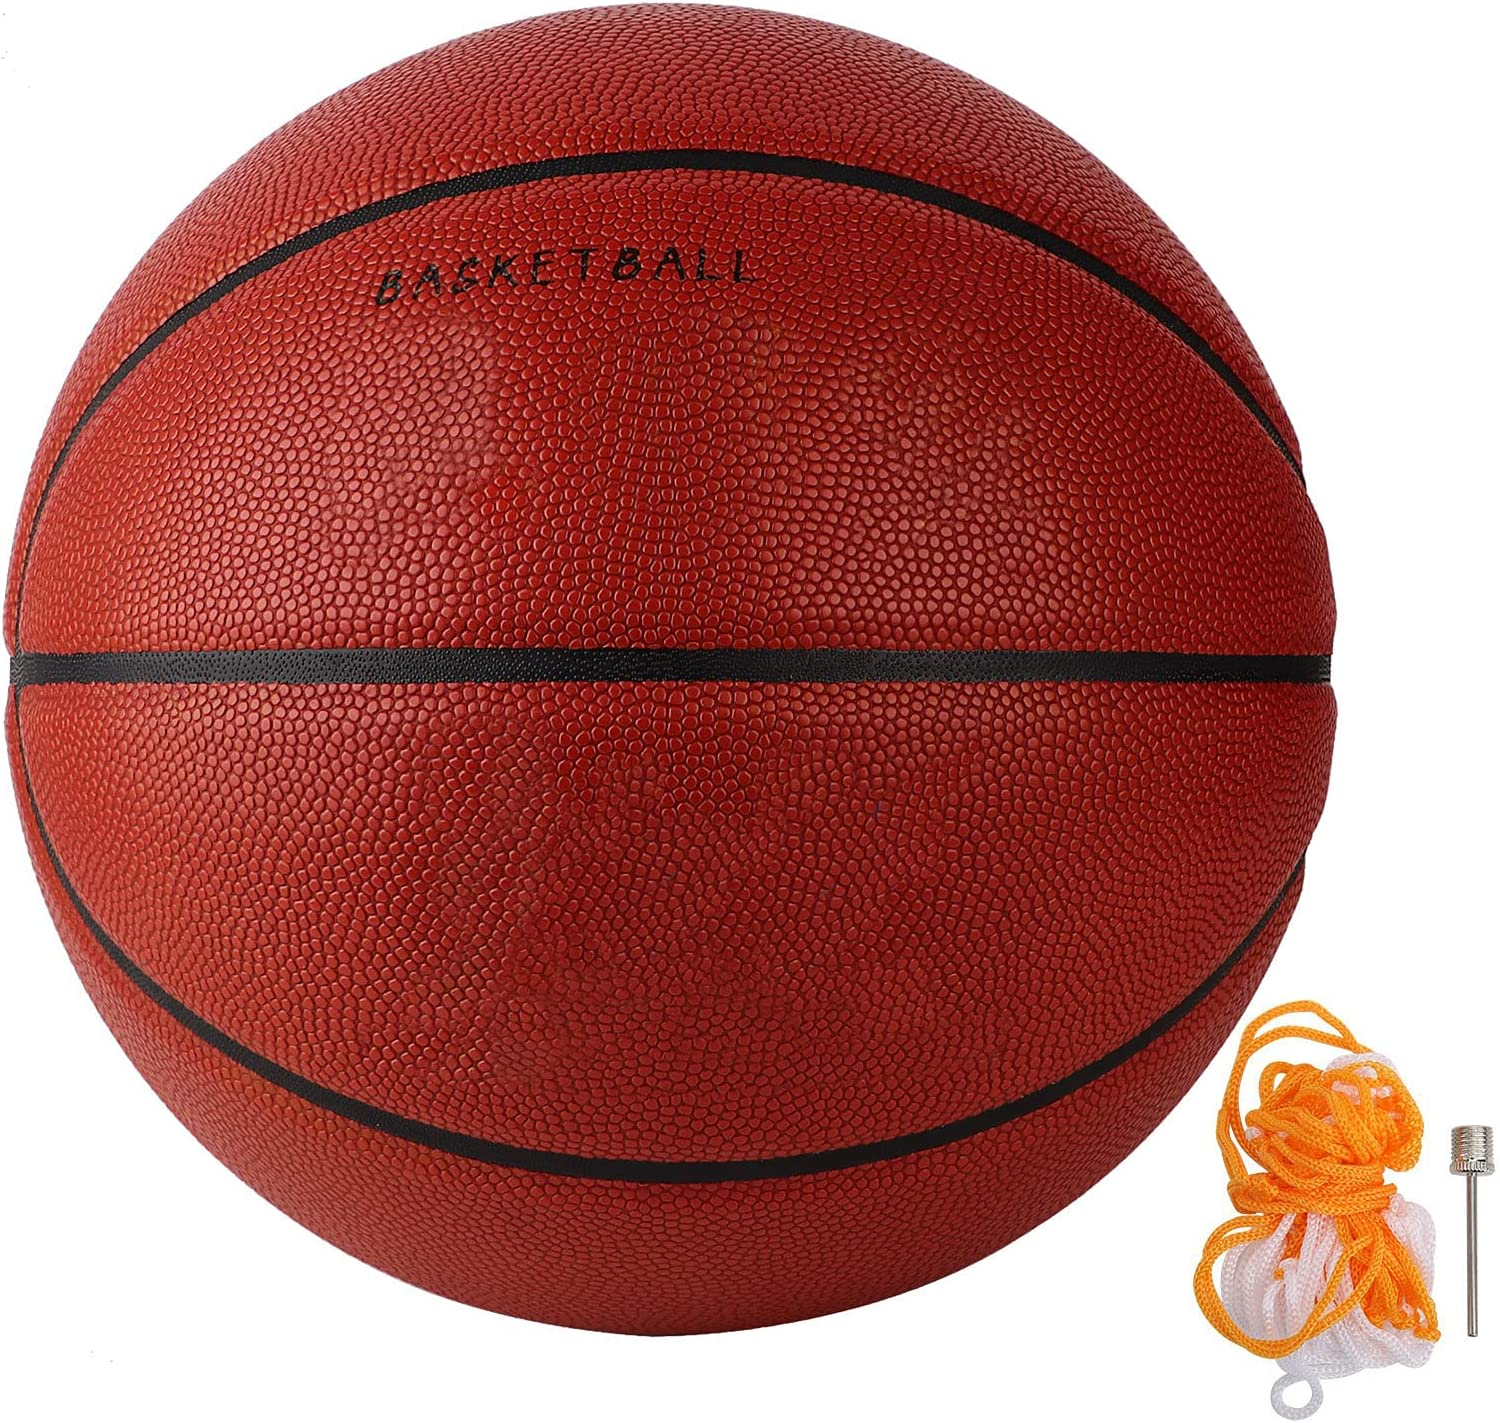 Jinyi Size 7 Basketball Durable Red Ex Some reservation Ranking TOP11 Playing Sports Ball for